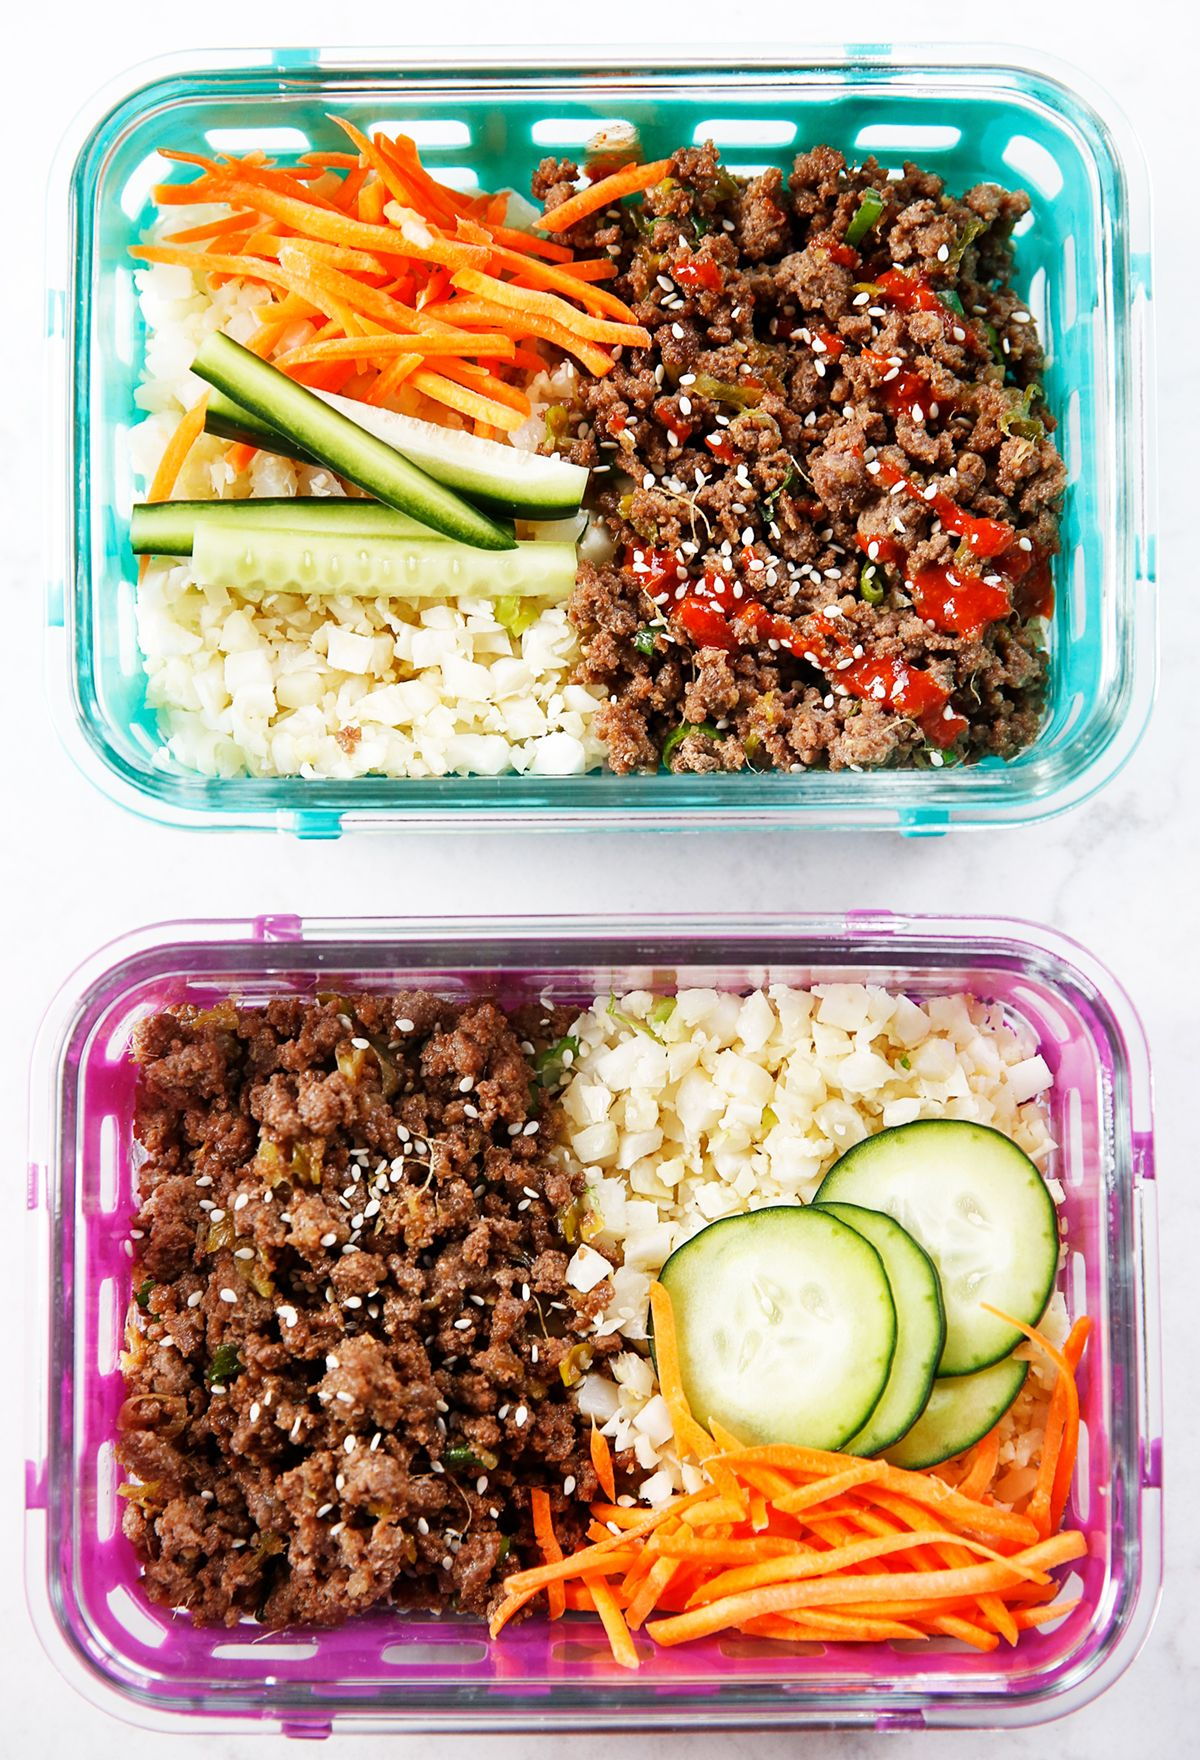 Korean Ground Beef Bowls Meal Prep Lexi S Clean Kitchen In 2020 Korean Ground Beef Ground Beef Beef Recipes